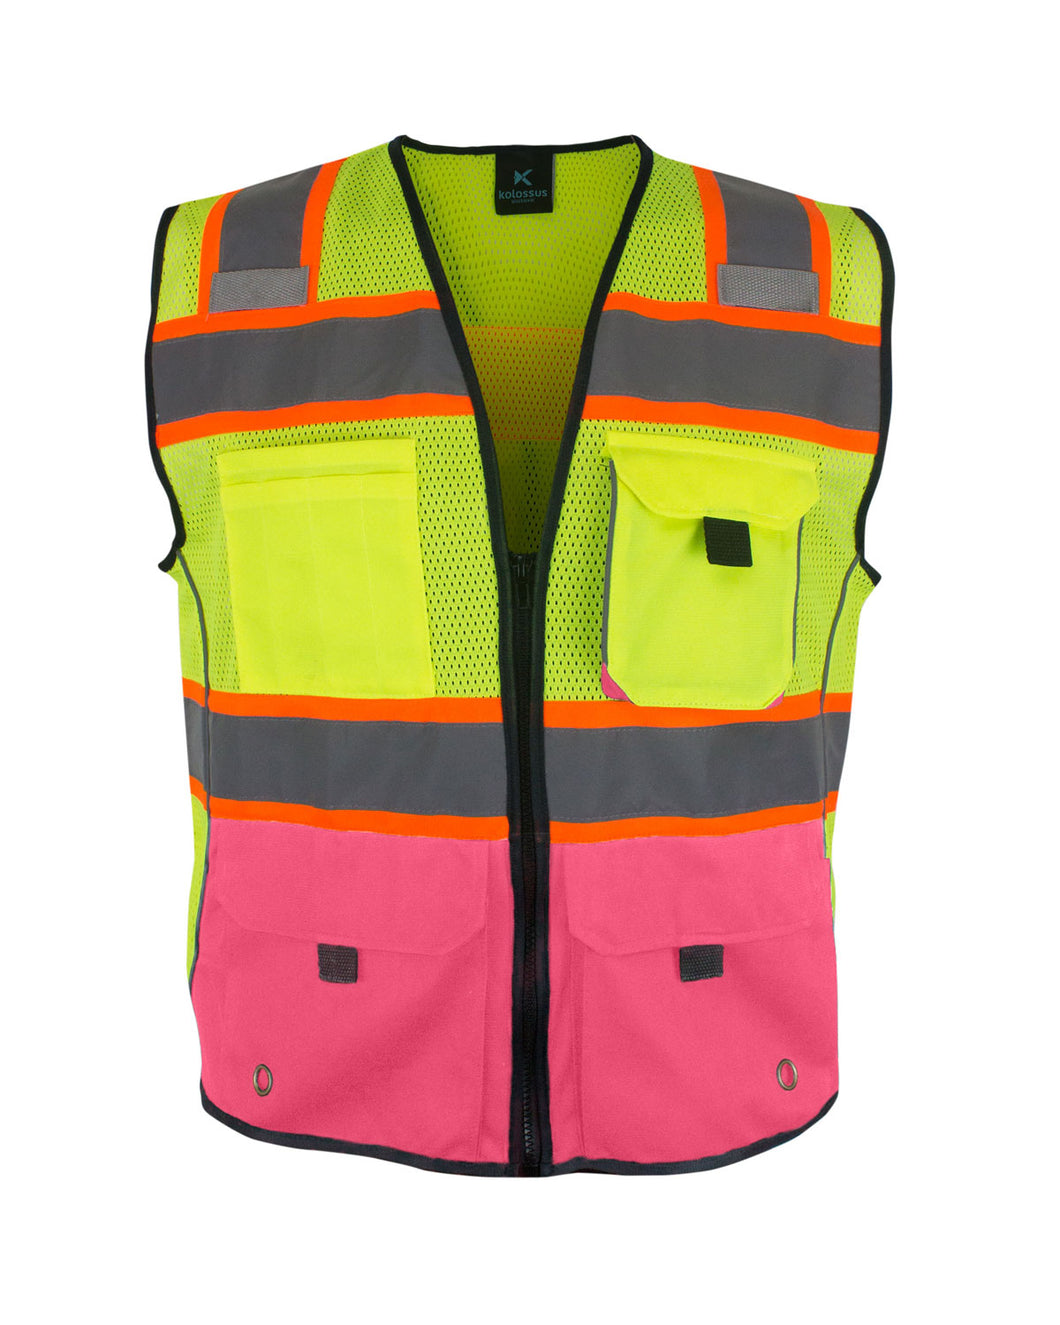 KV02H50 - Kolossus Deluxe High Visibility Vest with Multi Frontal Pockets | ANSI Class 2 Compliant - Pink